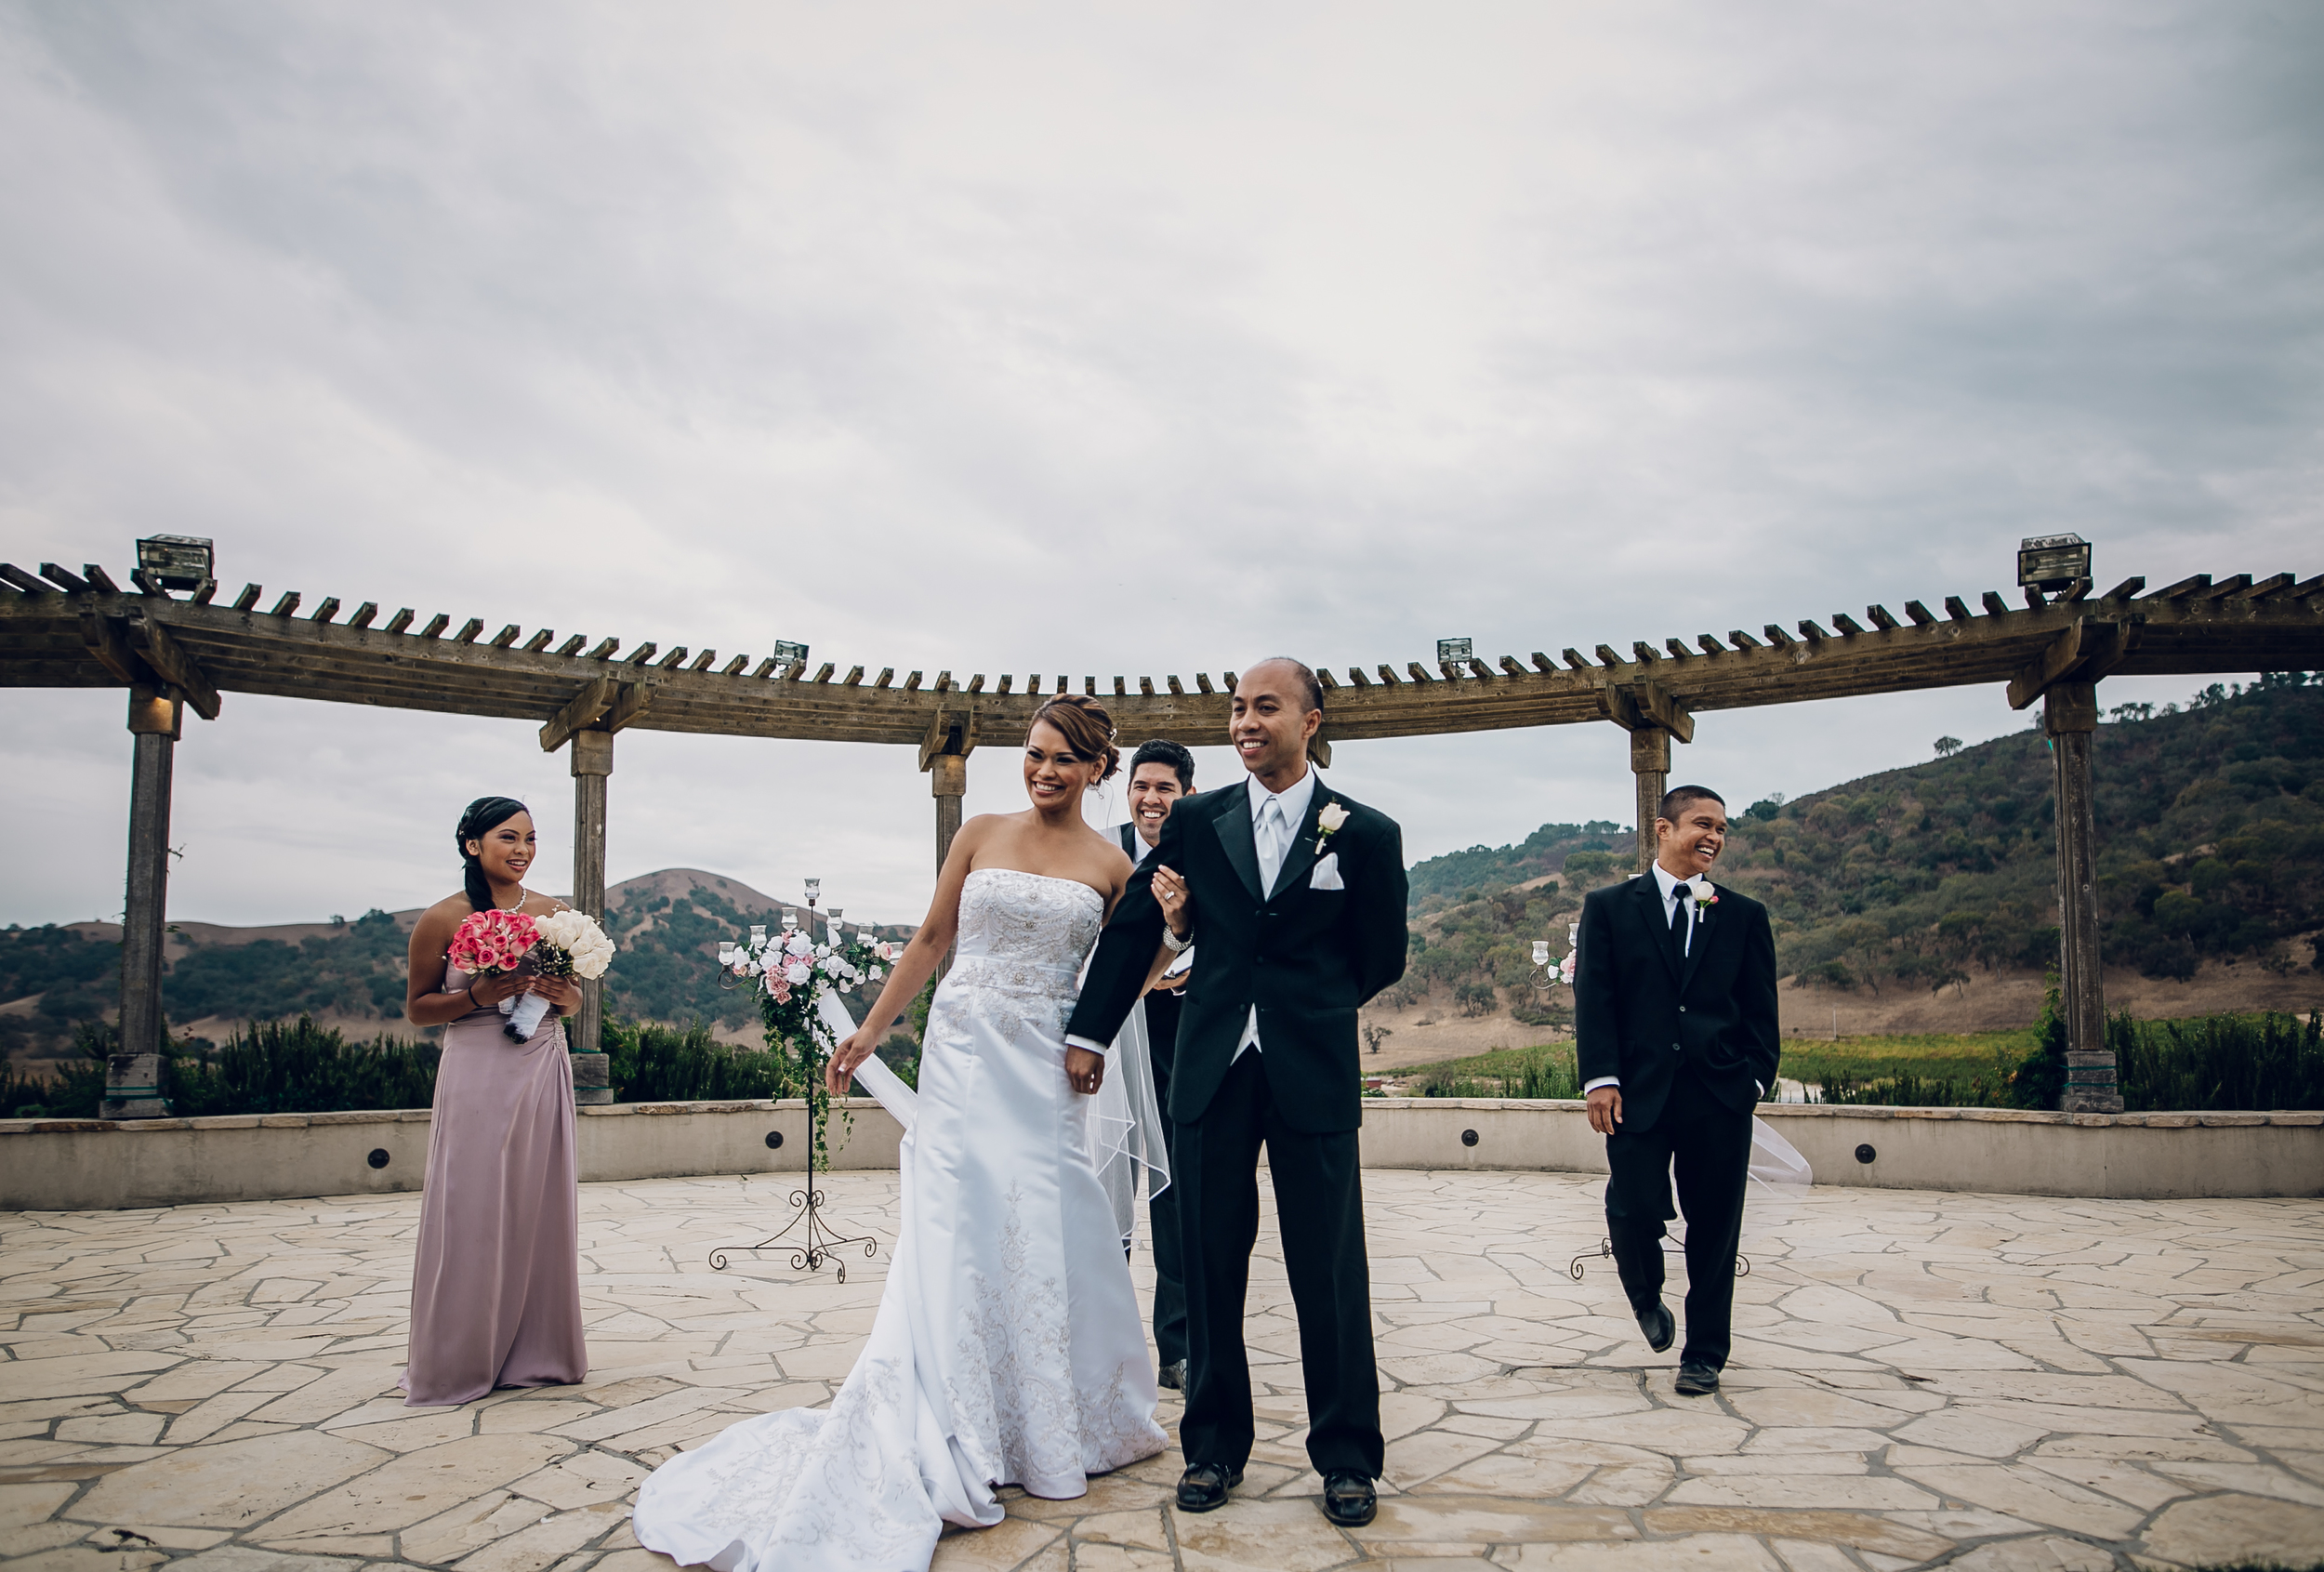 Shiela + Lester's Wedding 9-30-15 692.jpg